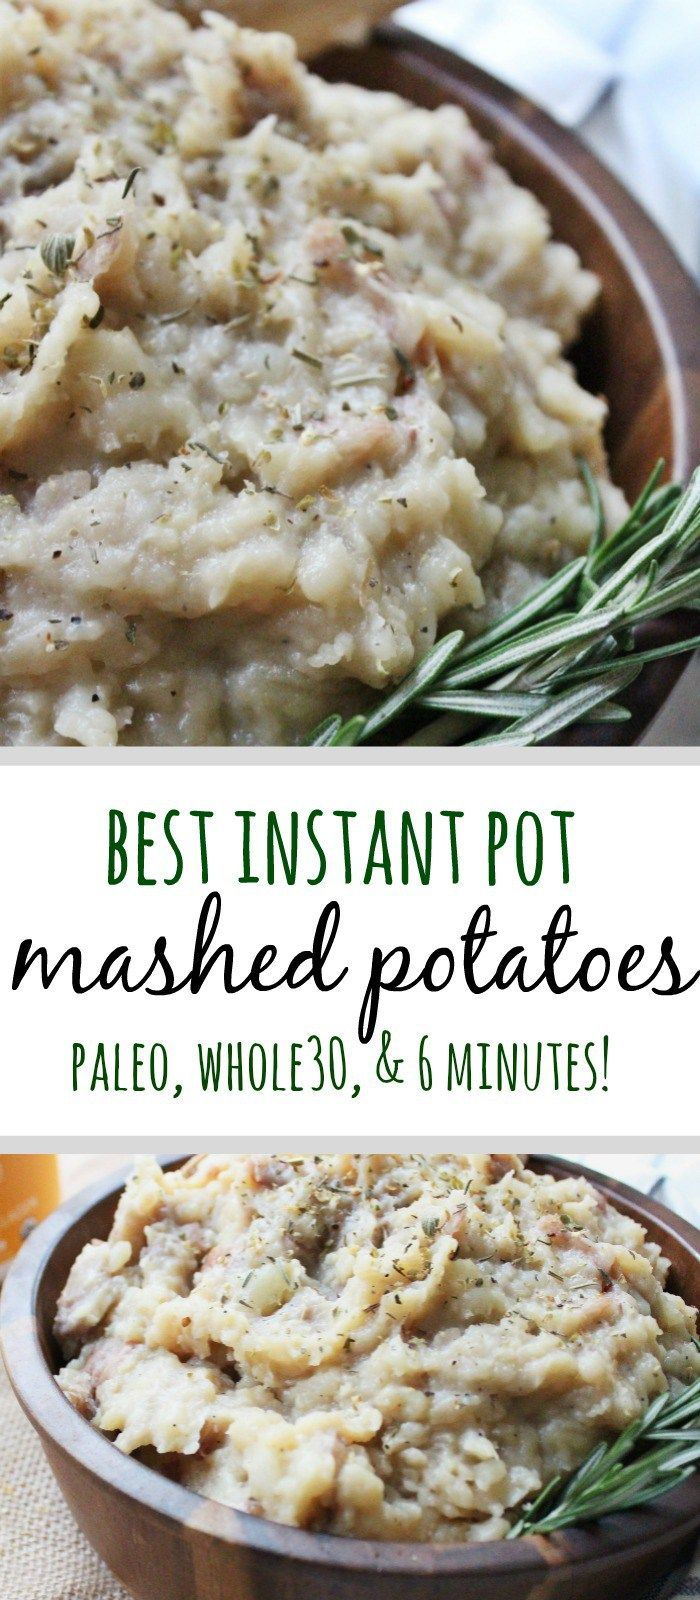 The best ever recipe for dairy free mashed potatoes! These instant pot mashed potatoes are a good paleo side dish, holiday Whole30 side dish, and even have stovetop instructions! #paleosidedish #paleomashedpotatoes #paleoholiday #whole30holiday #whole30side #whole30potatoes via @paleobailey